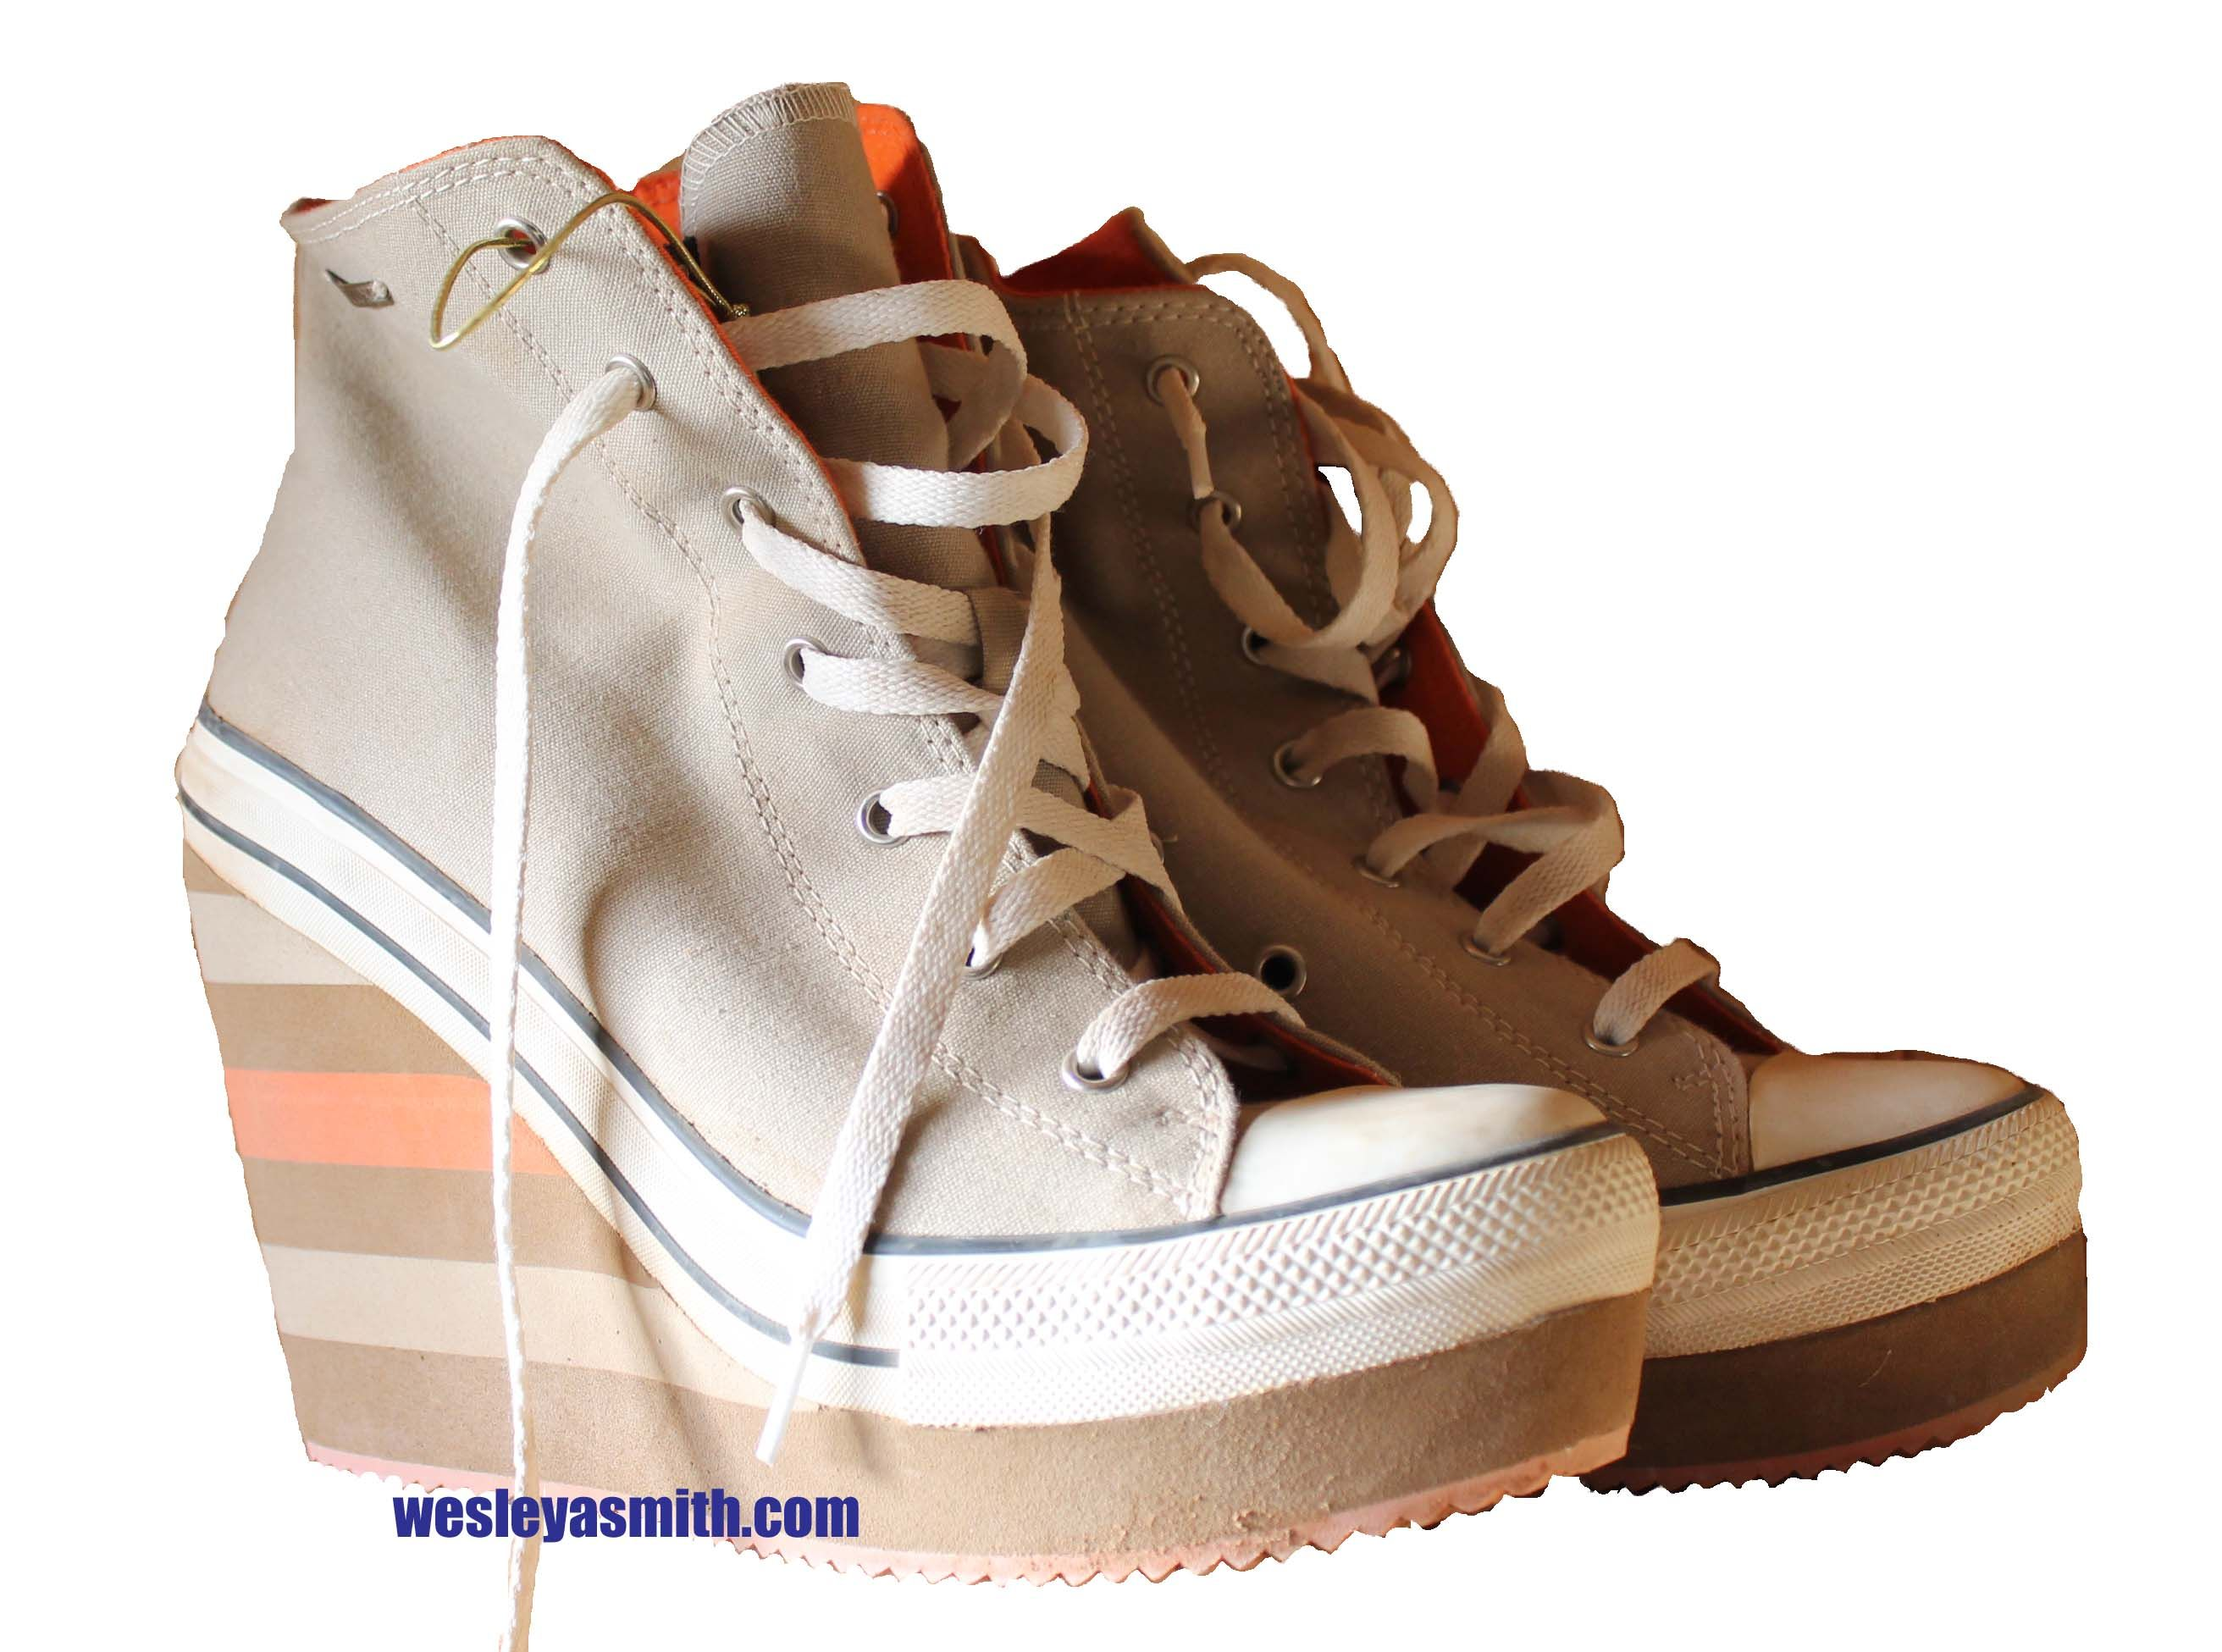 the coolest sneaker's  ever